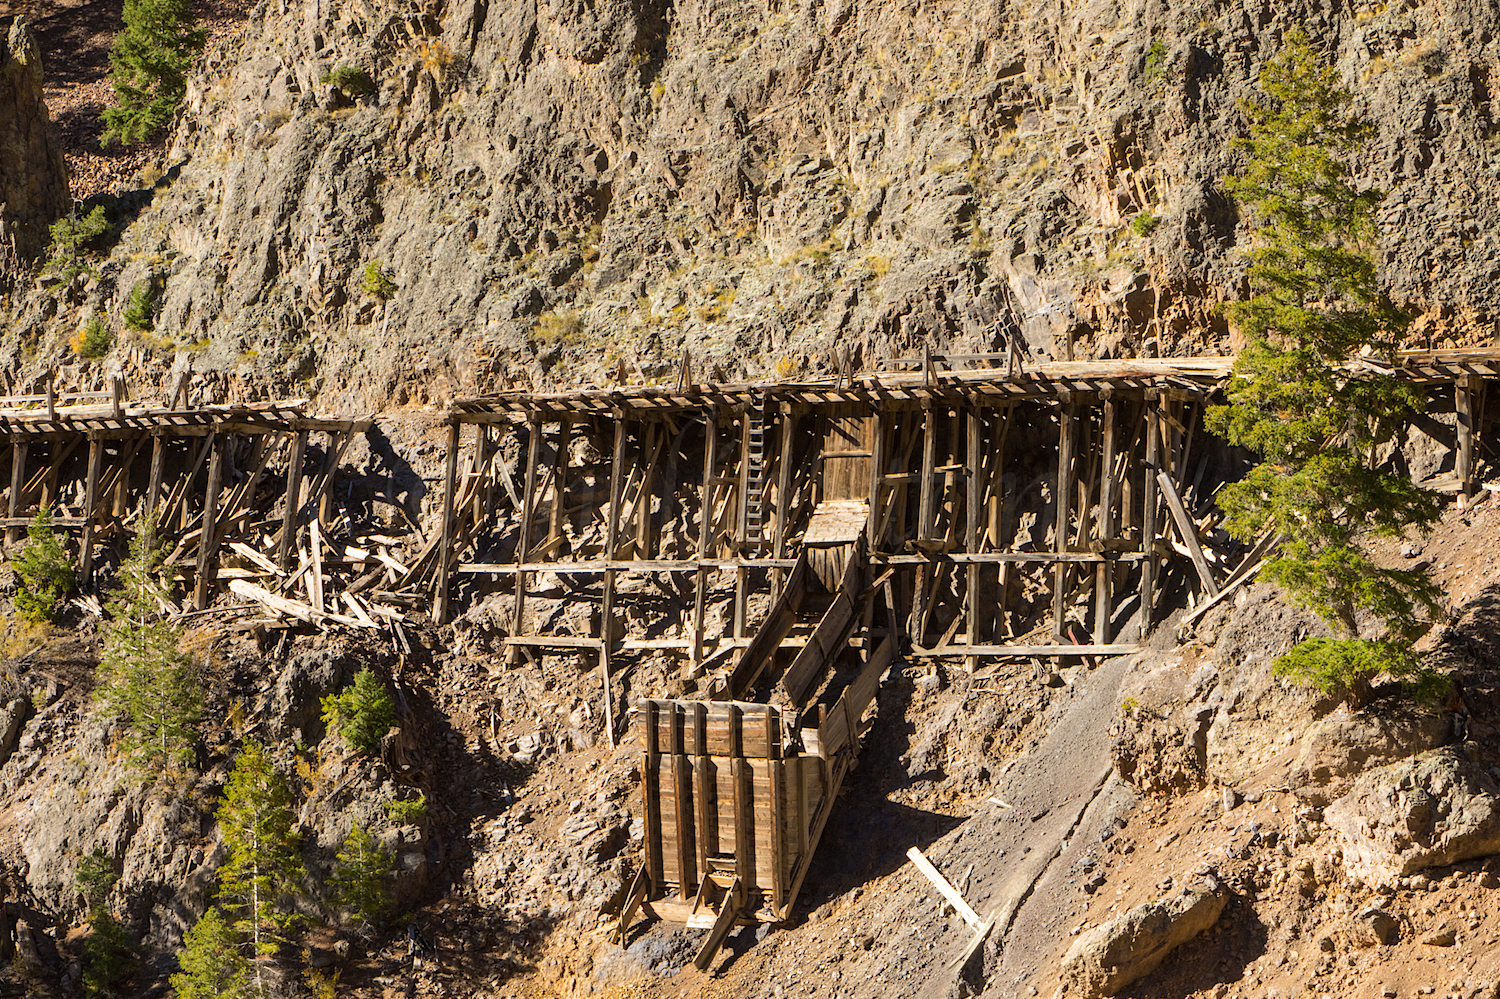 Trestle for moving ore cars down the hill from mine to mill, Image # 3177